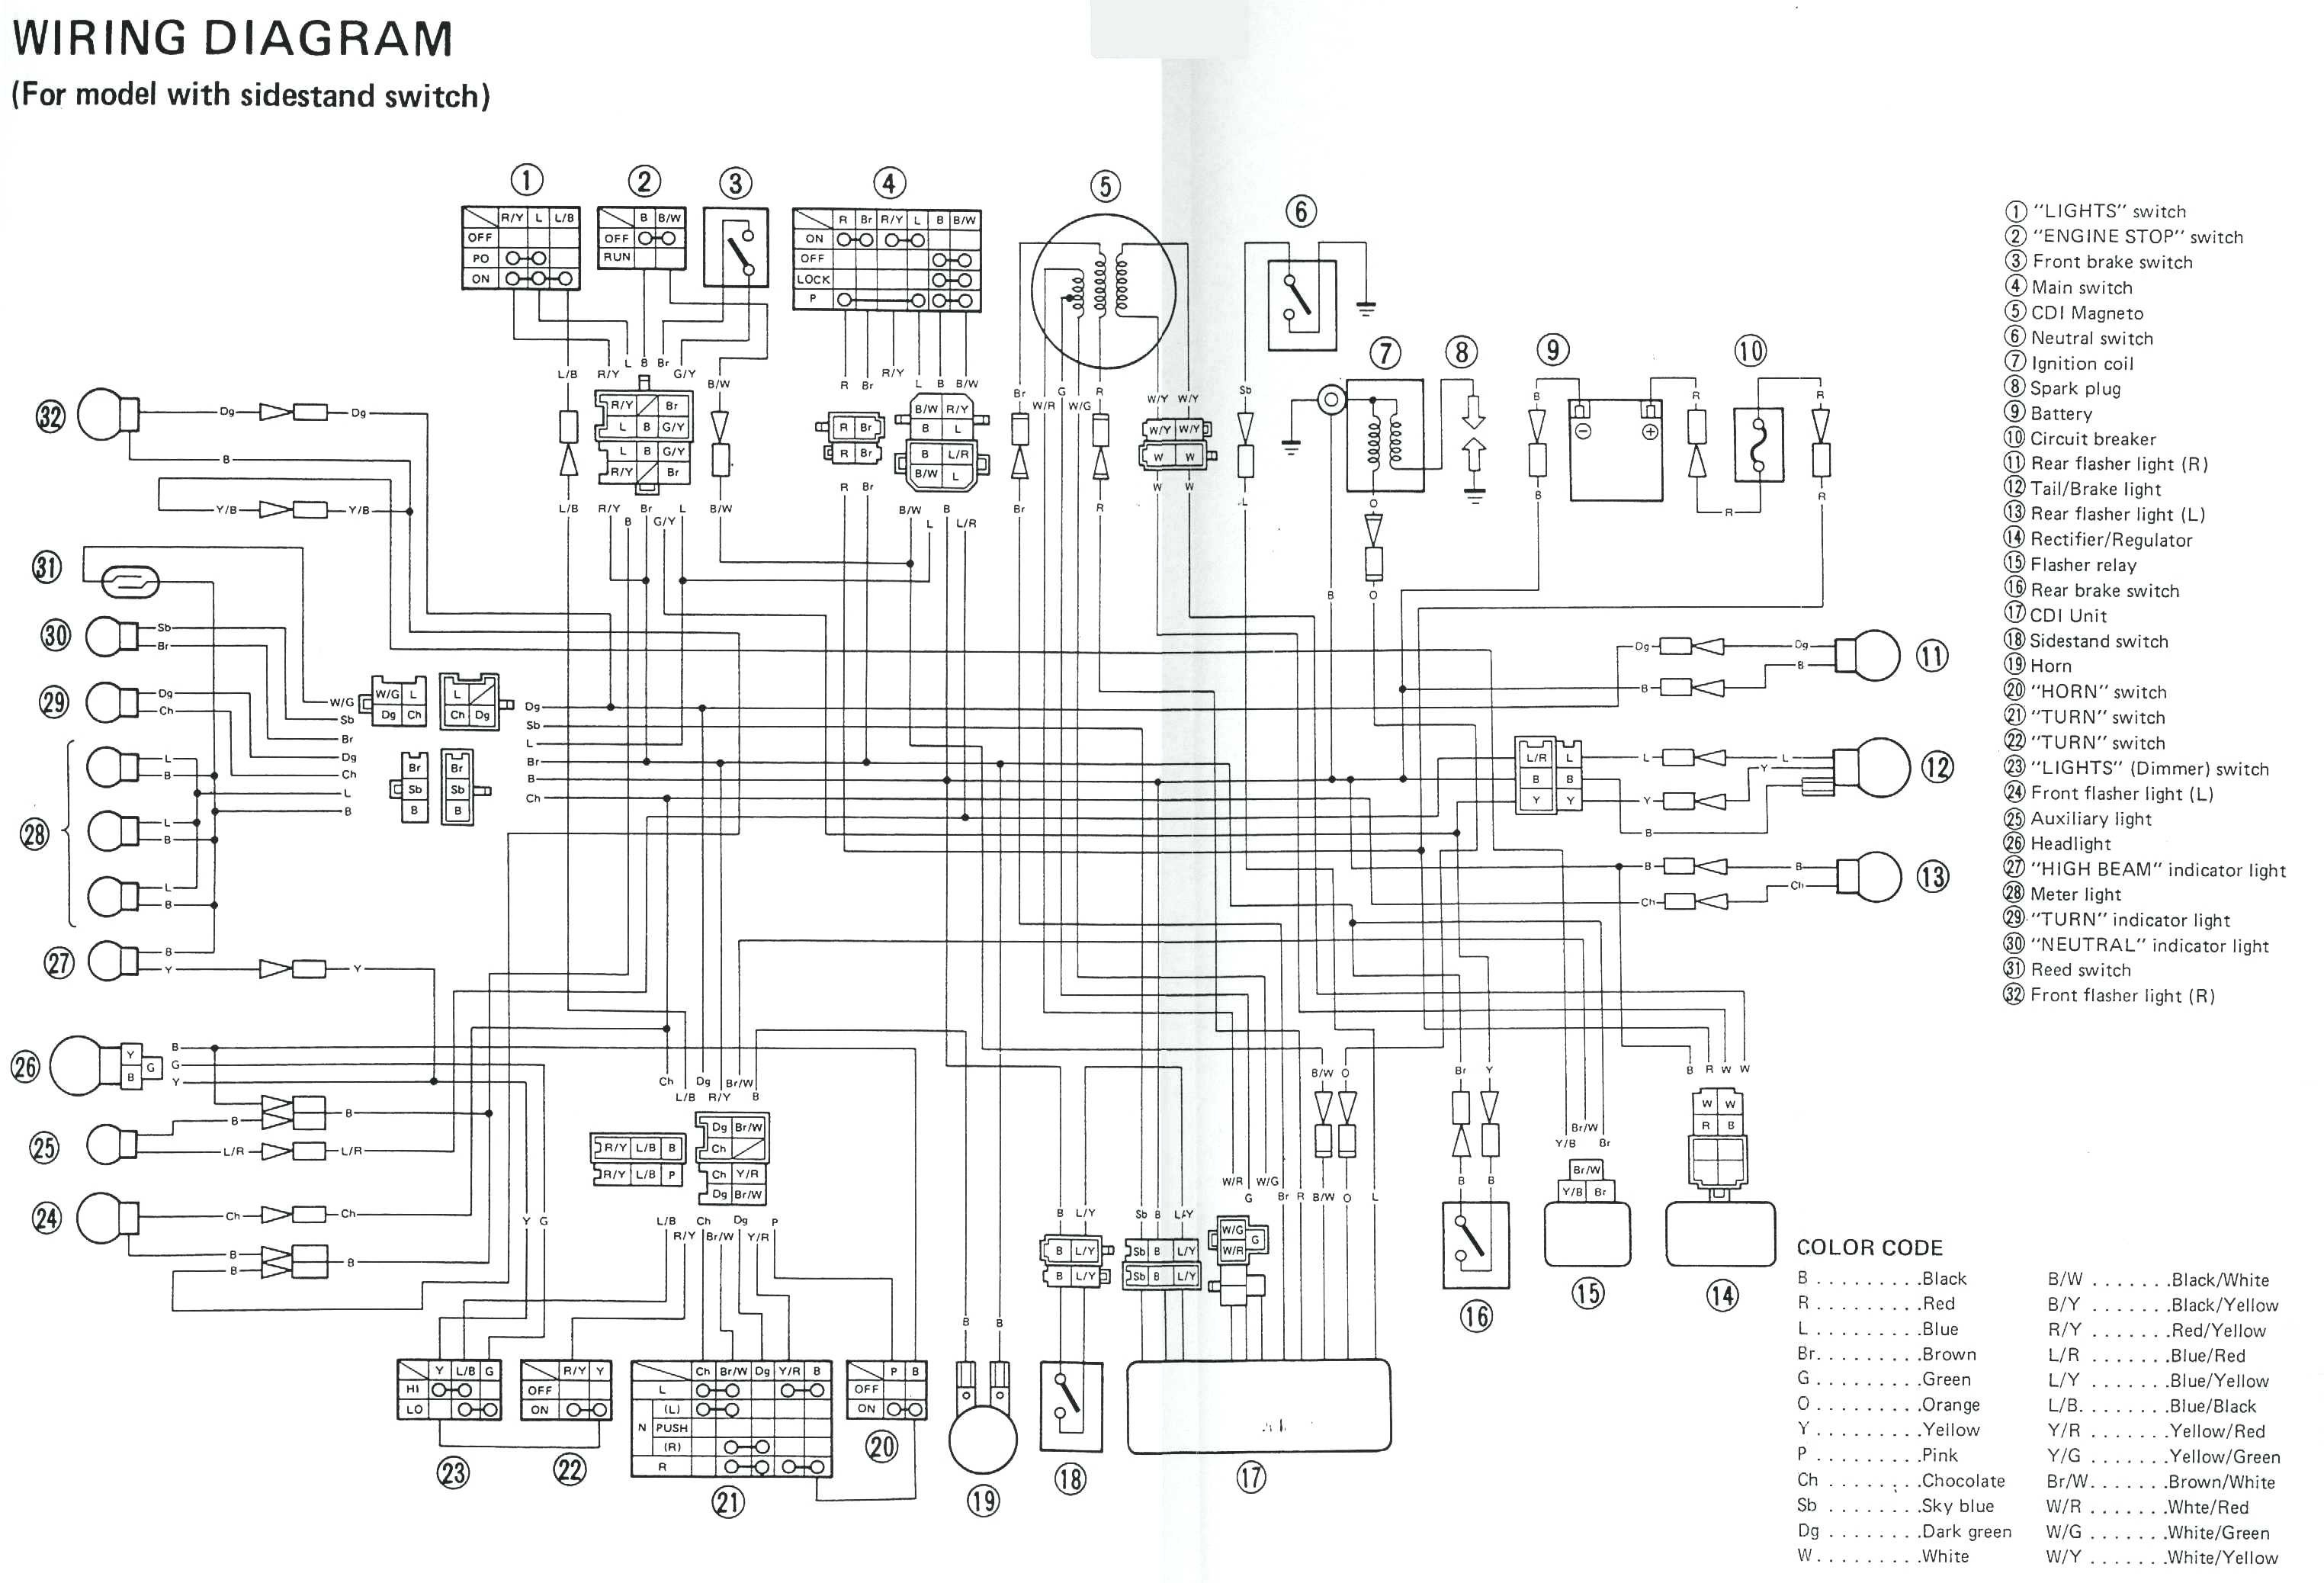 Wiring Diagram Yamaha At 1 - Wiring Diagram Perfomance on